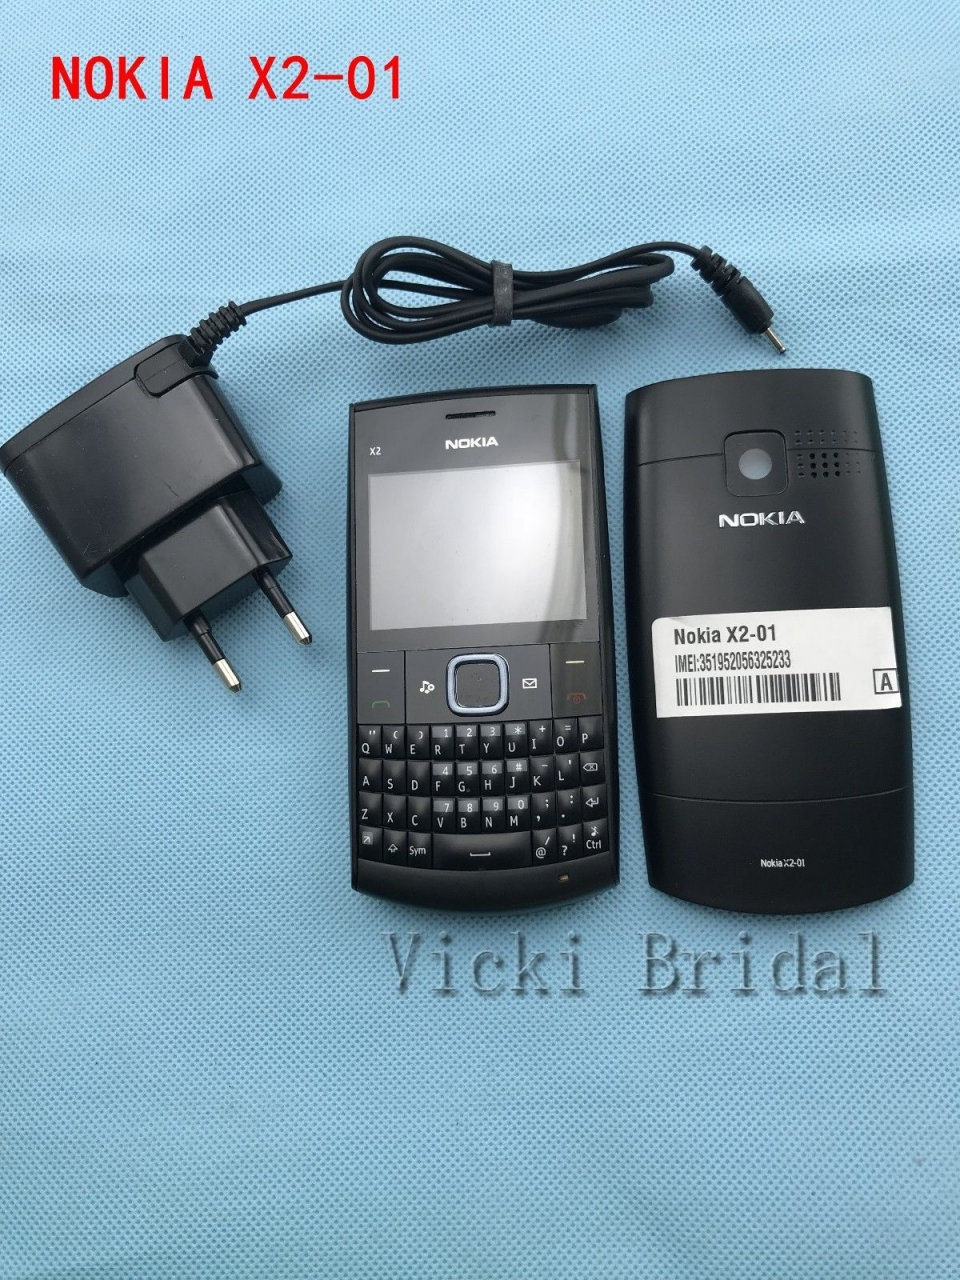 Refurbished phone Nokia X2-01 Symbian OS Computer Keyboard Mobile Phone Fashion Cell Phones blue 8